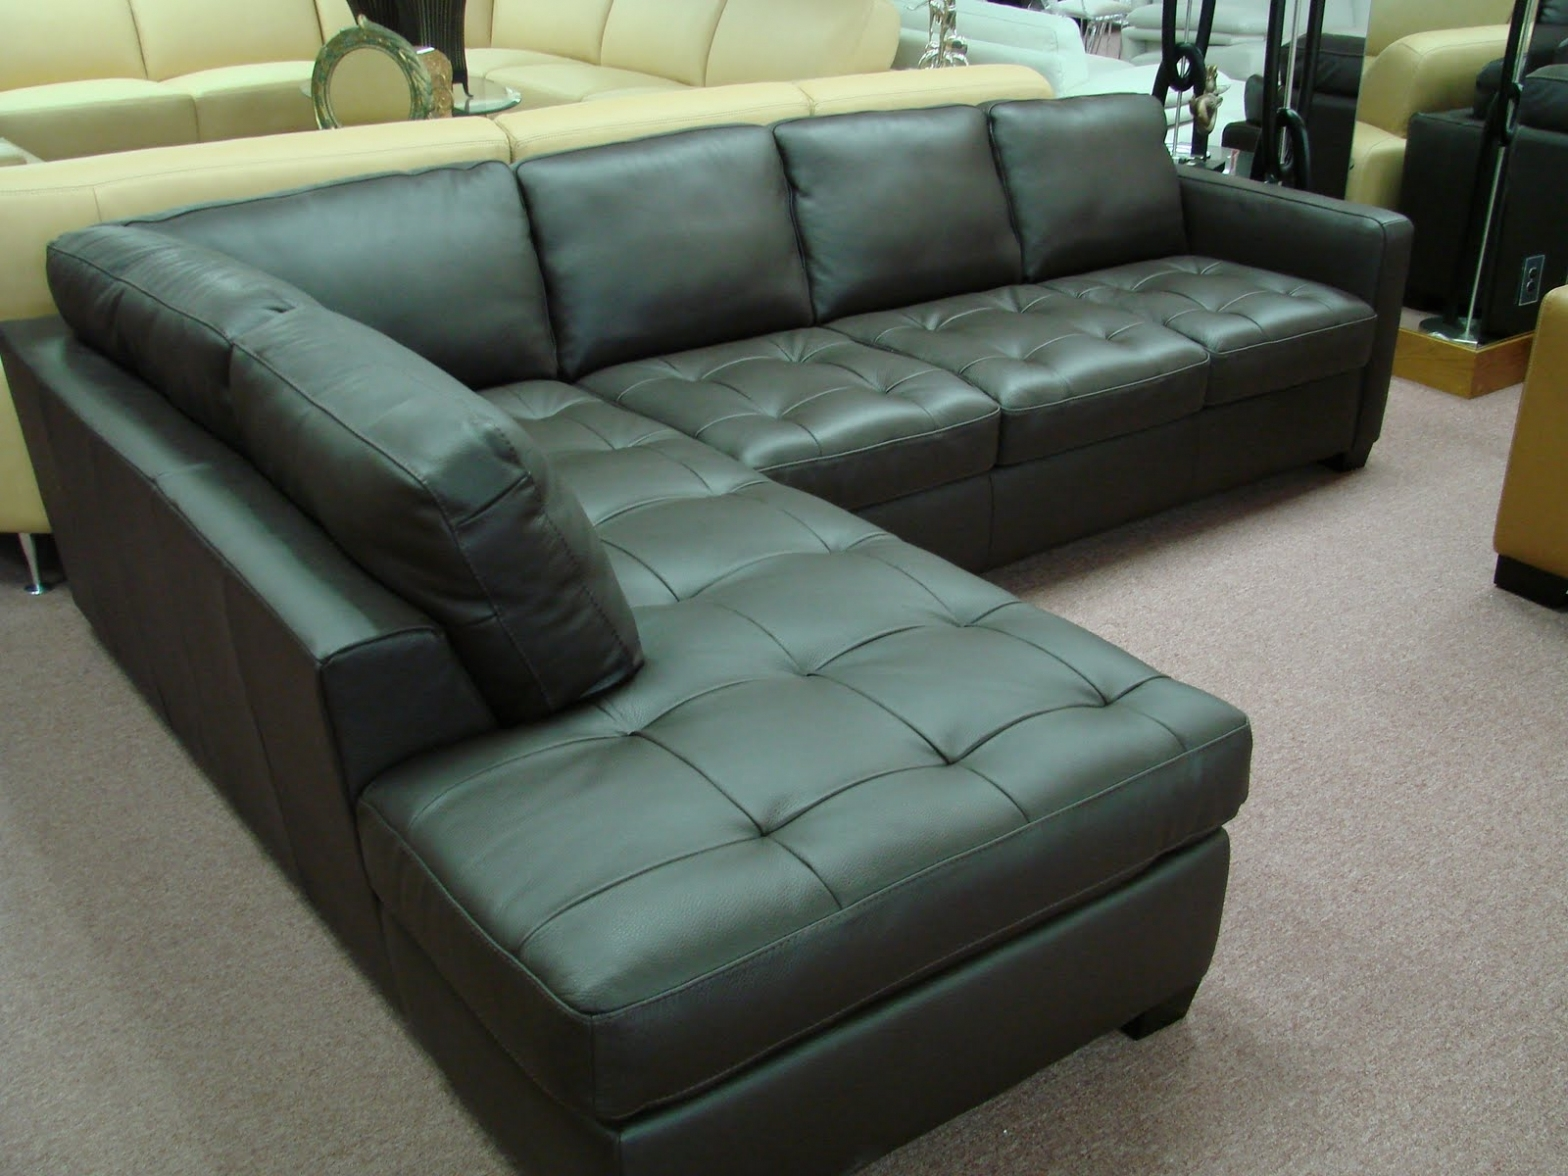 Furniture: Furniture: Havertys Leather Sectional | Havertys Sofas throughout Sectional Sofas at Havertys (Image 7 of 15)